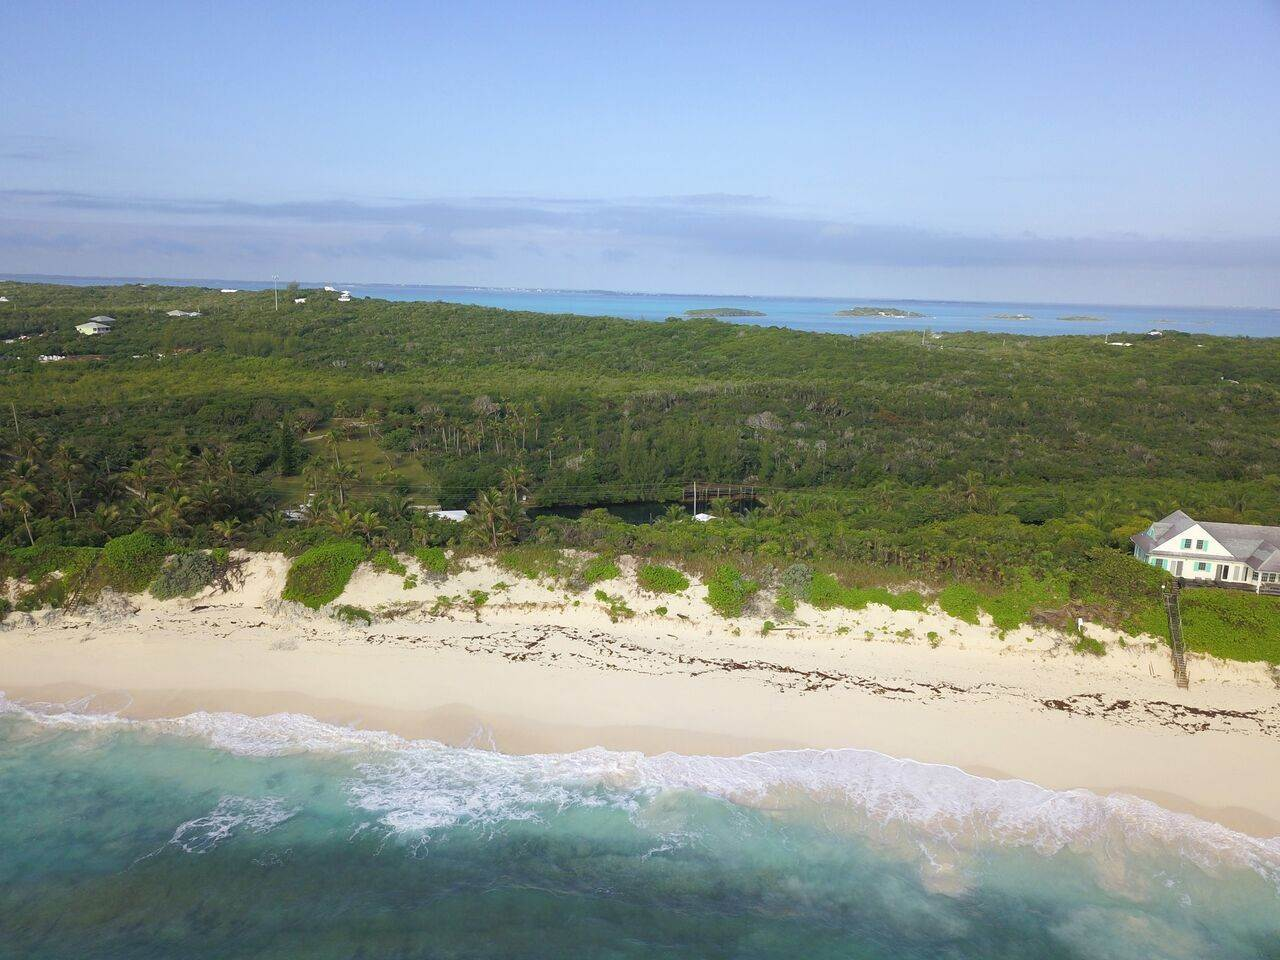 Land for Sale at Prime Beachfront parcel on Elbow Cay Elbow Cay Hope Town, Abaco, Bahamas